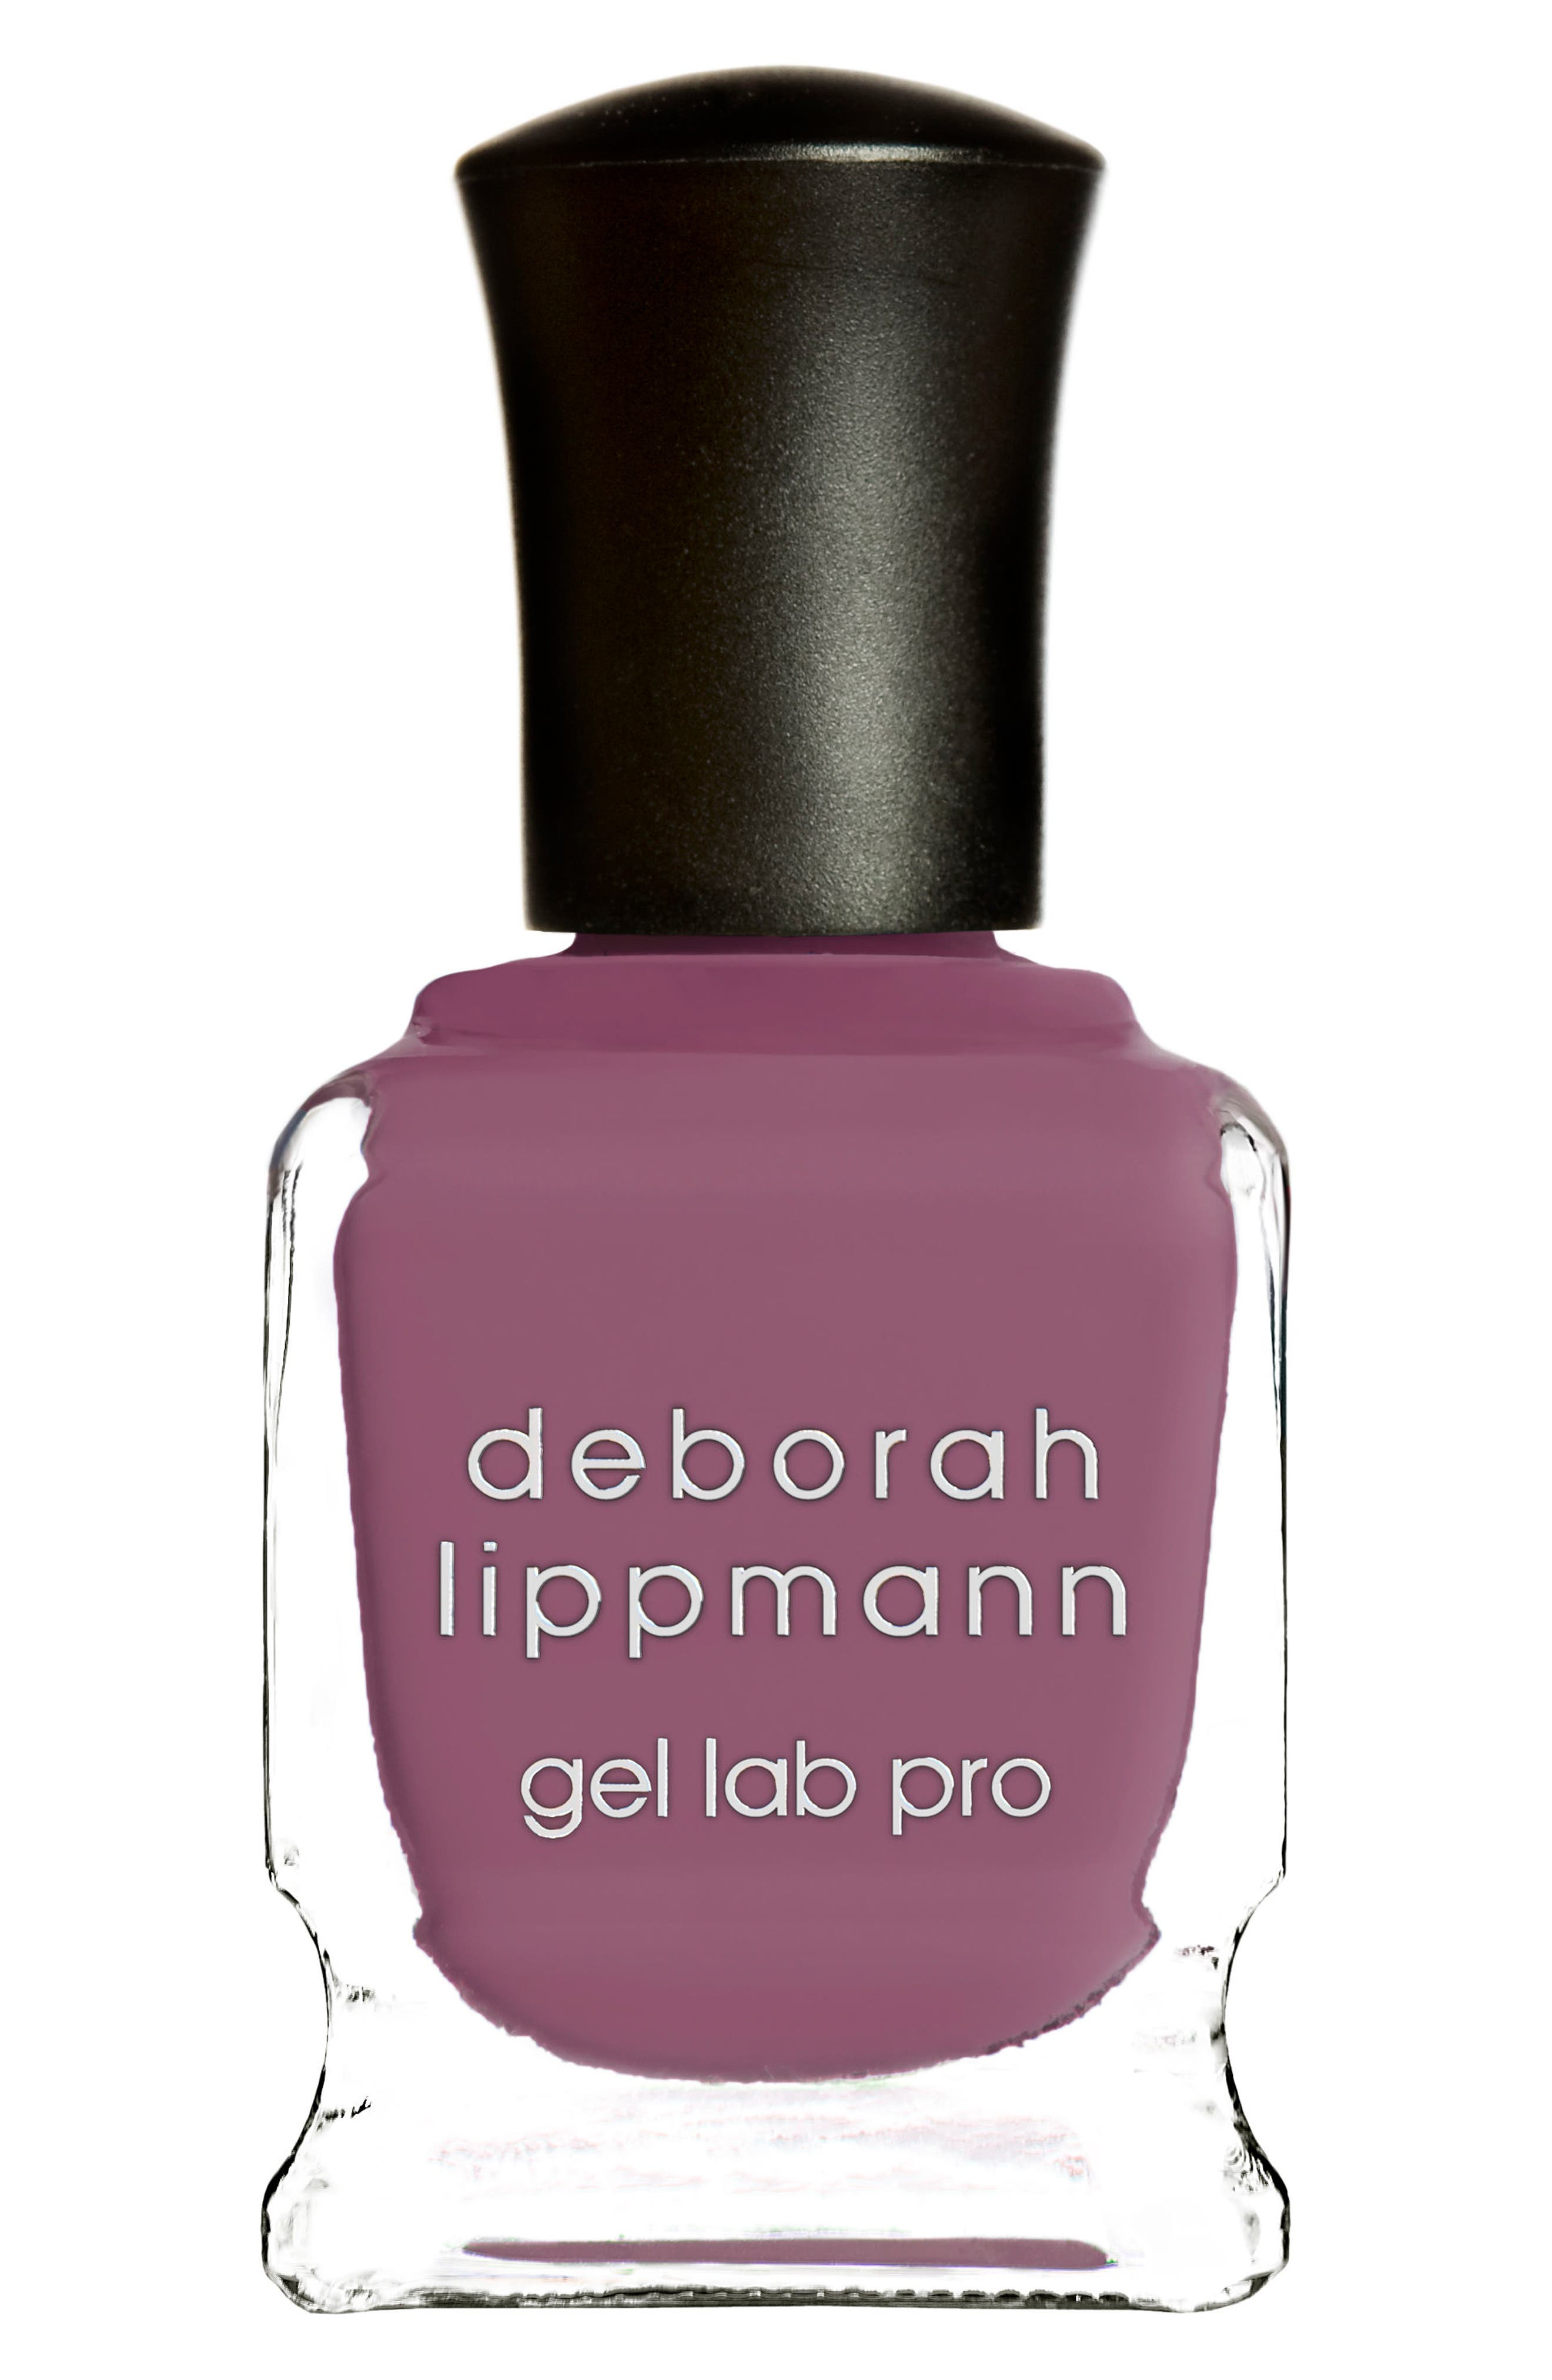 Deborah Lippmann Gel Lab Pro - Star Power Collection Nail Color